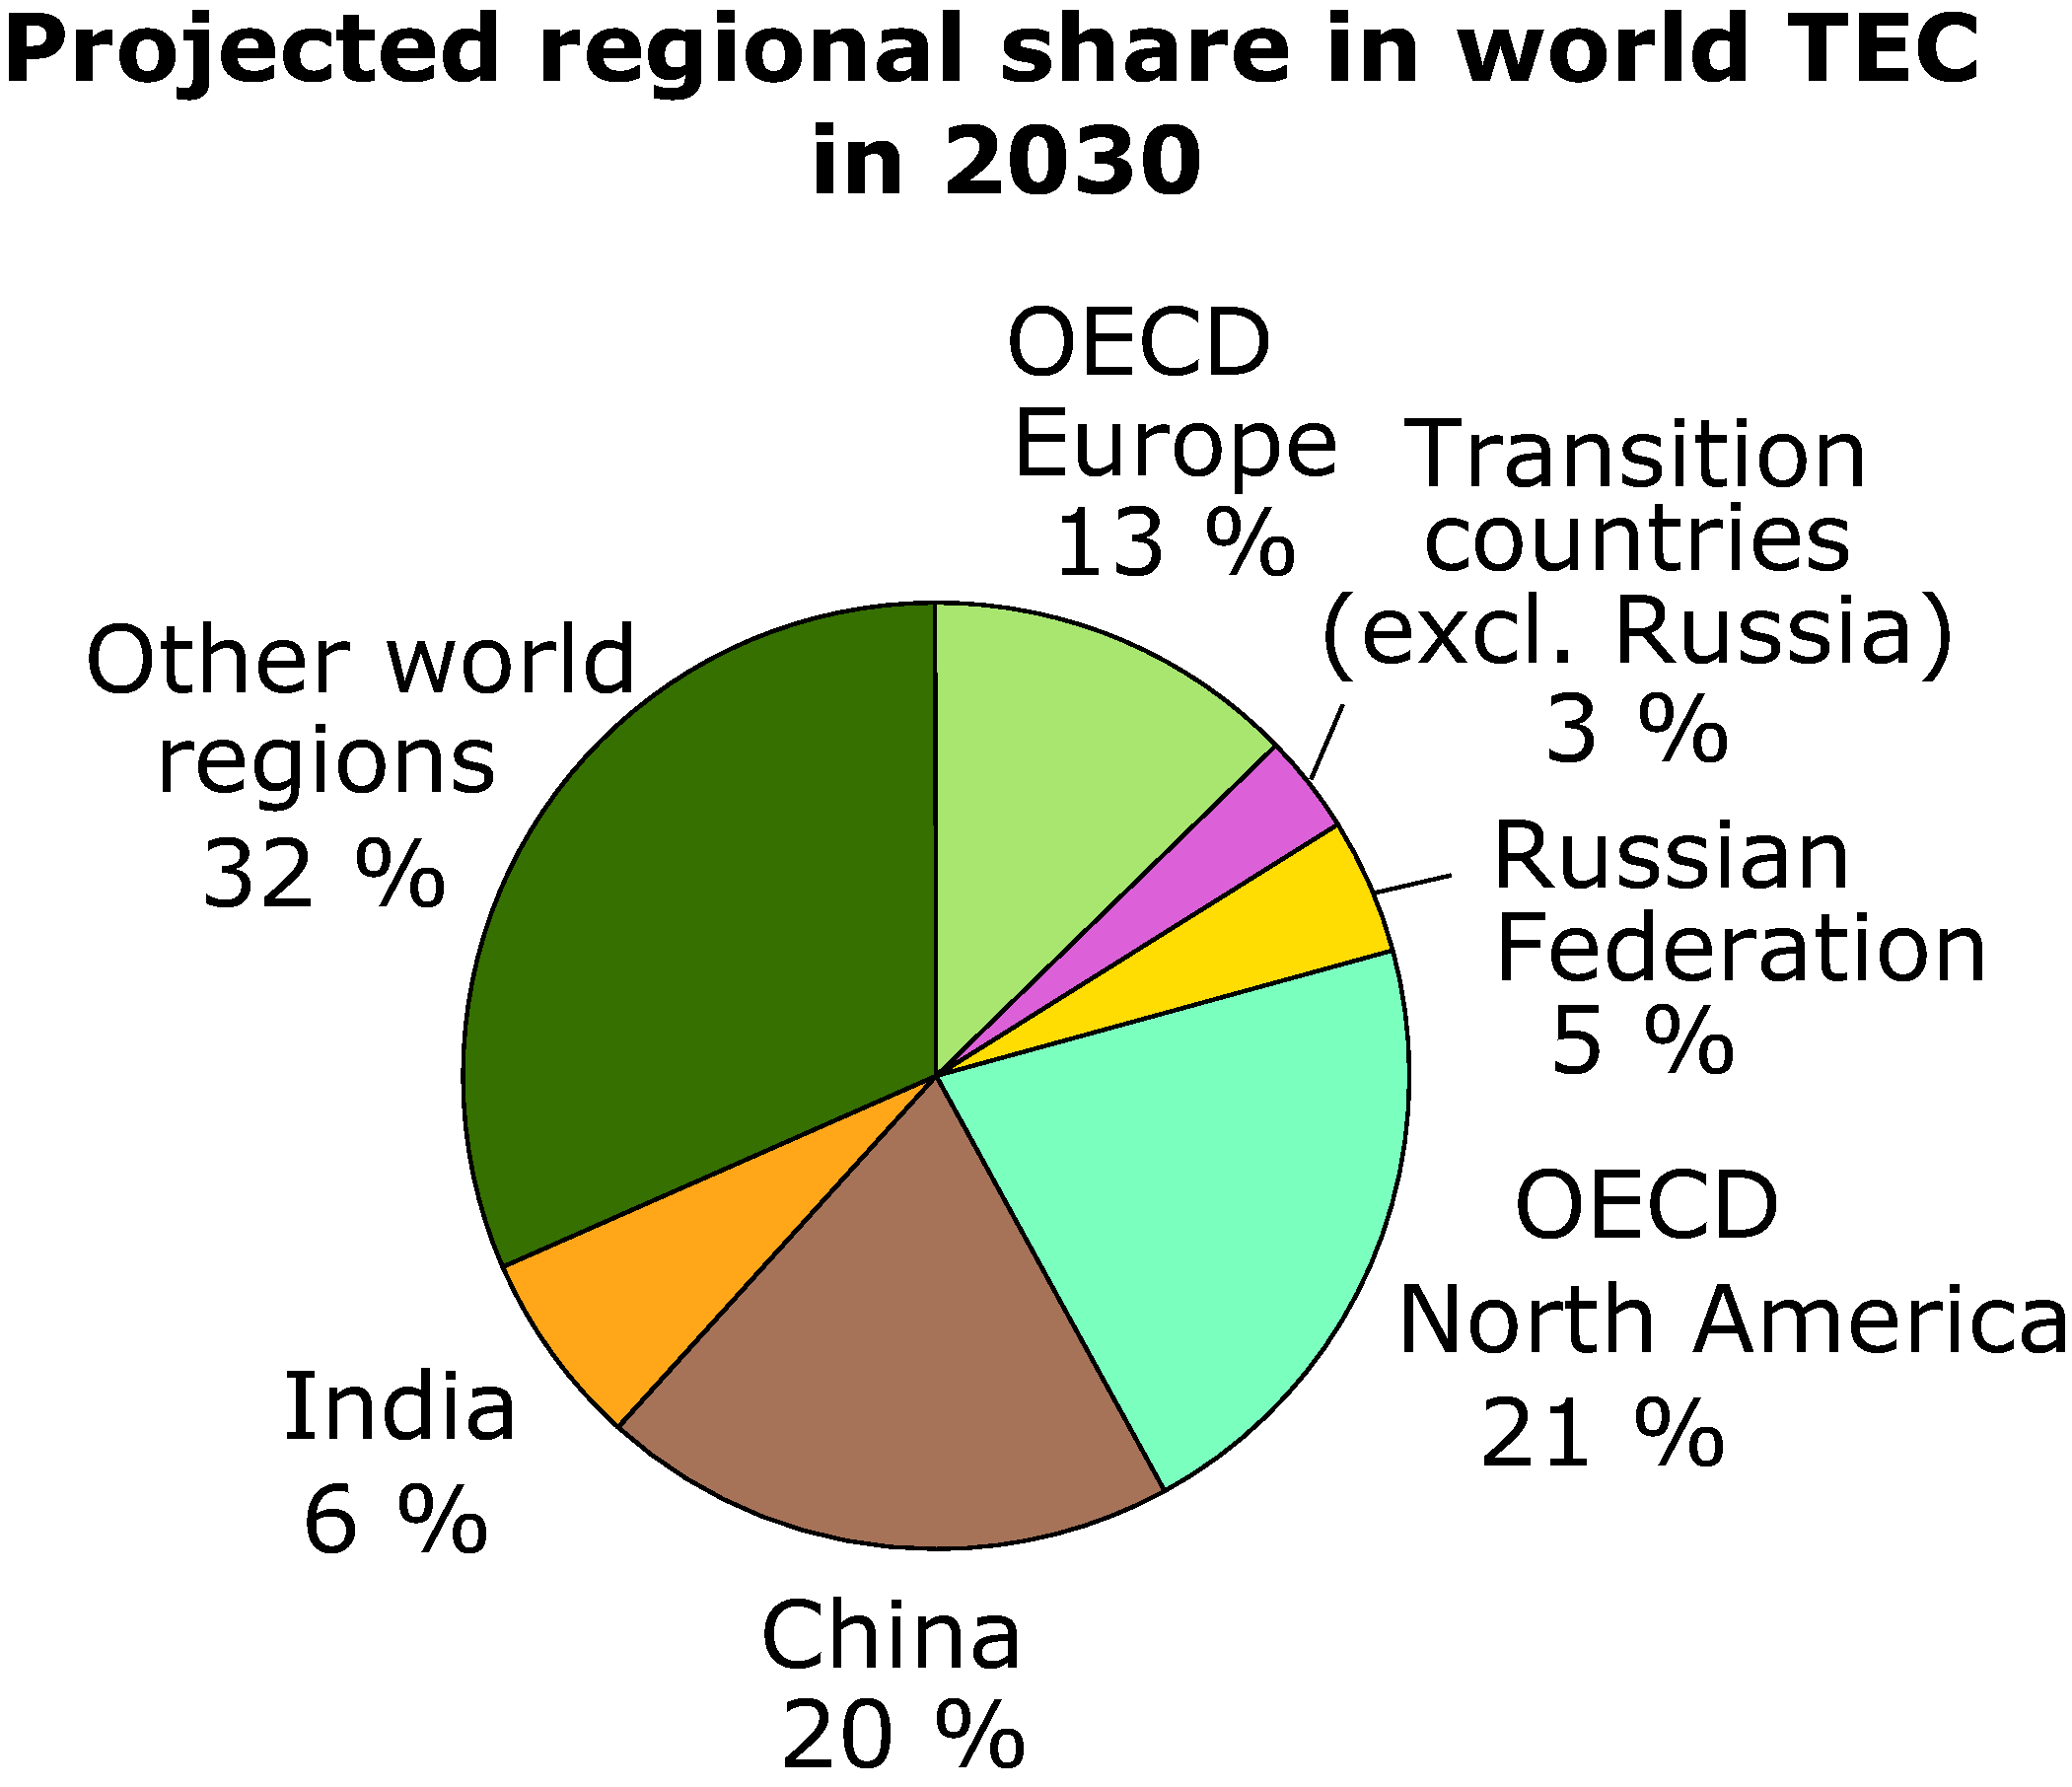 Projected regional share in world TEC in 2030